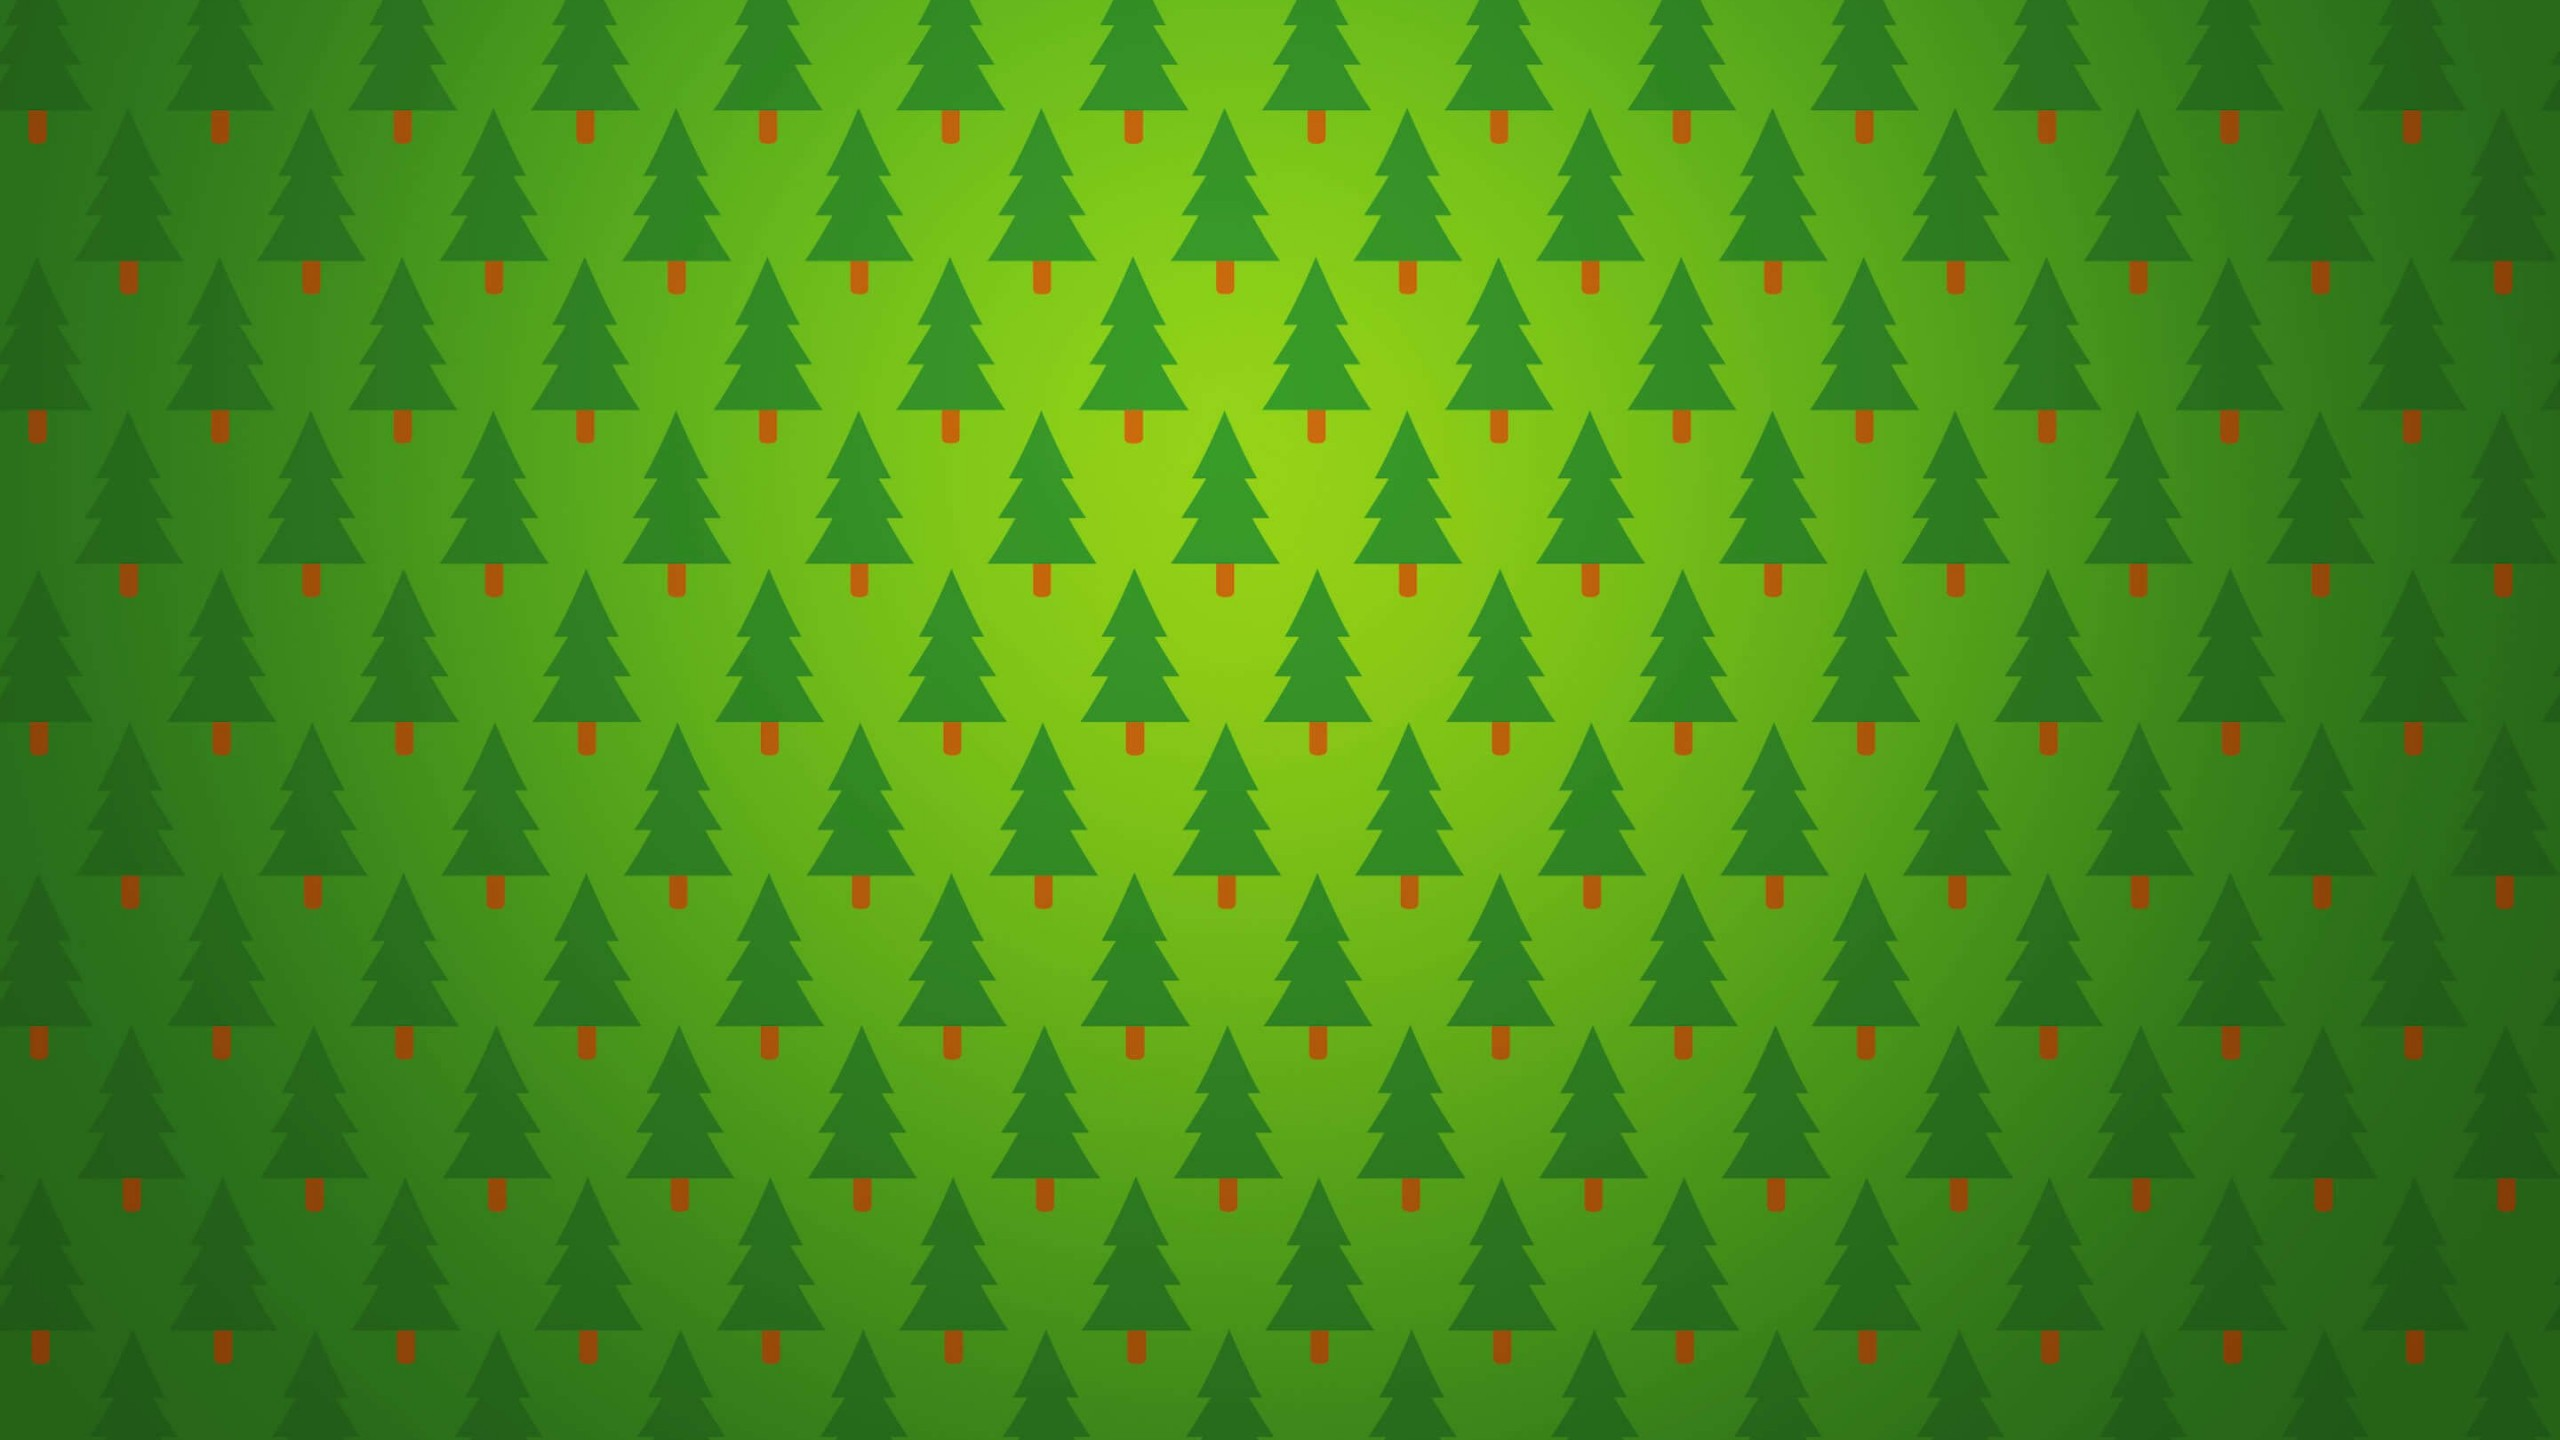 Christmas Tree Pattern Wallpaper for Social Media YouTube Channel Art